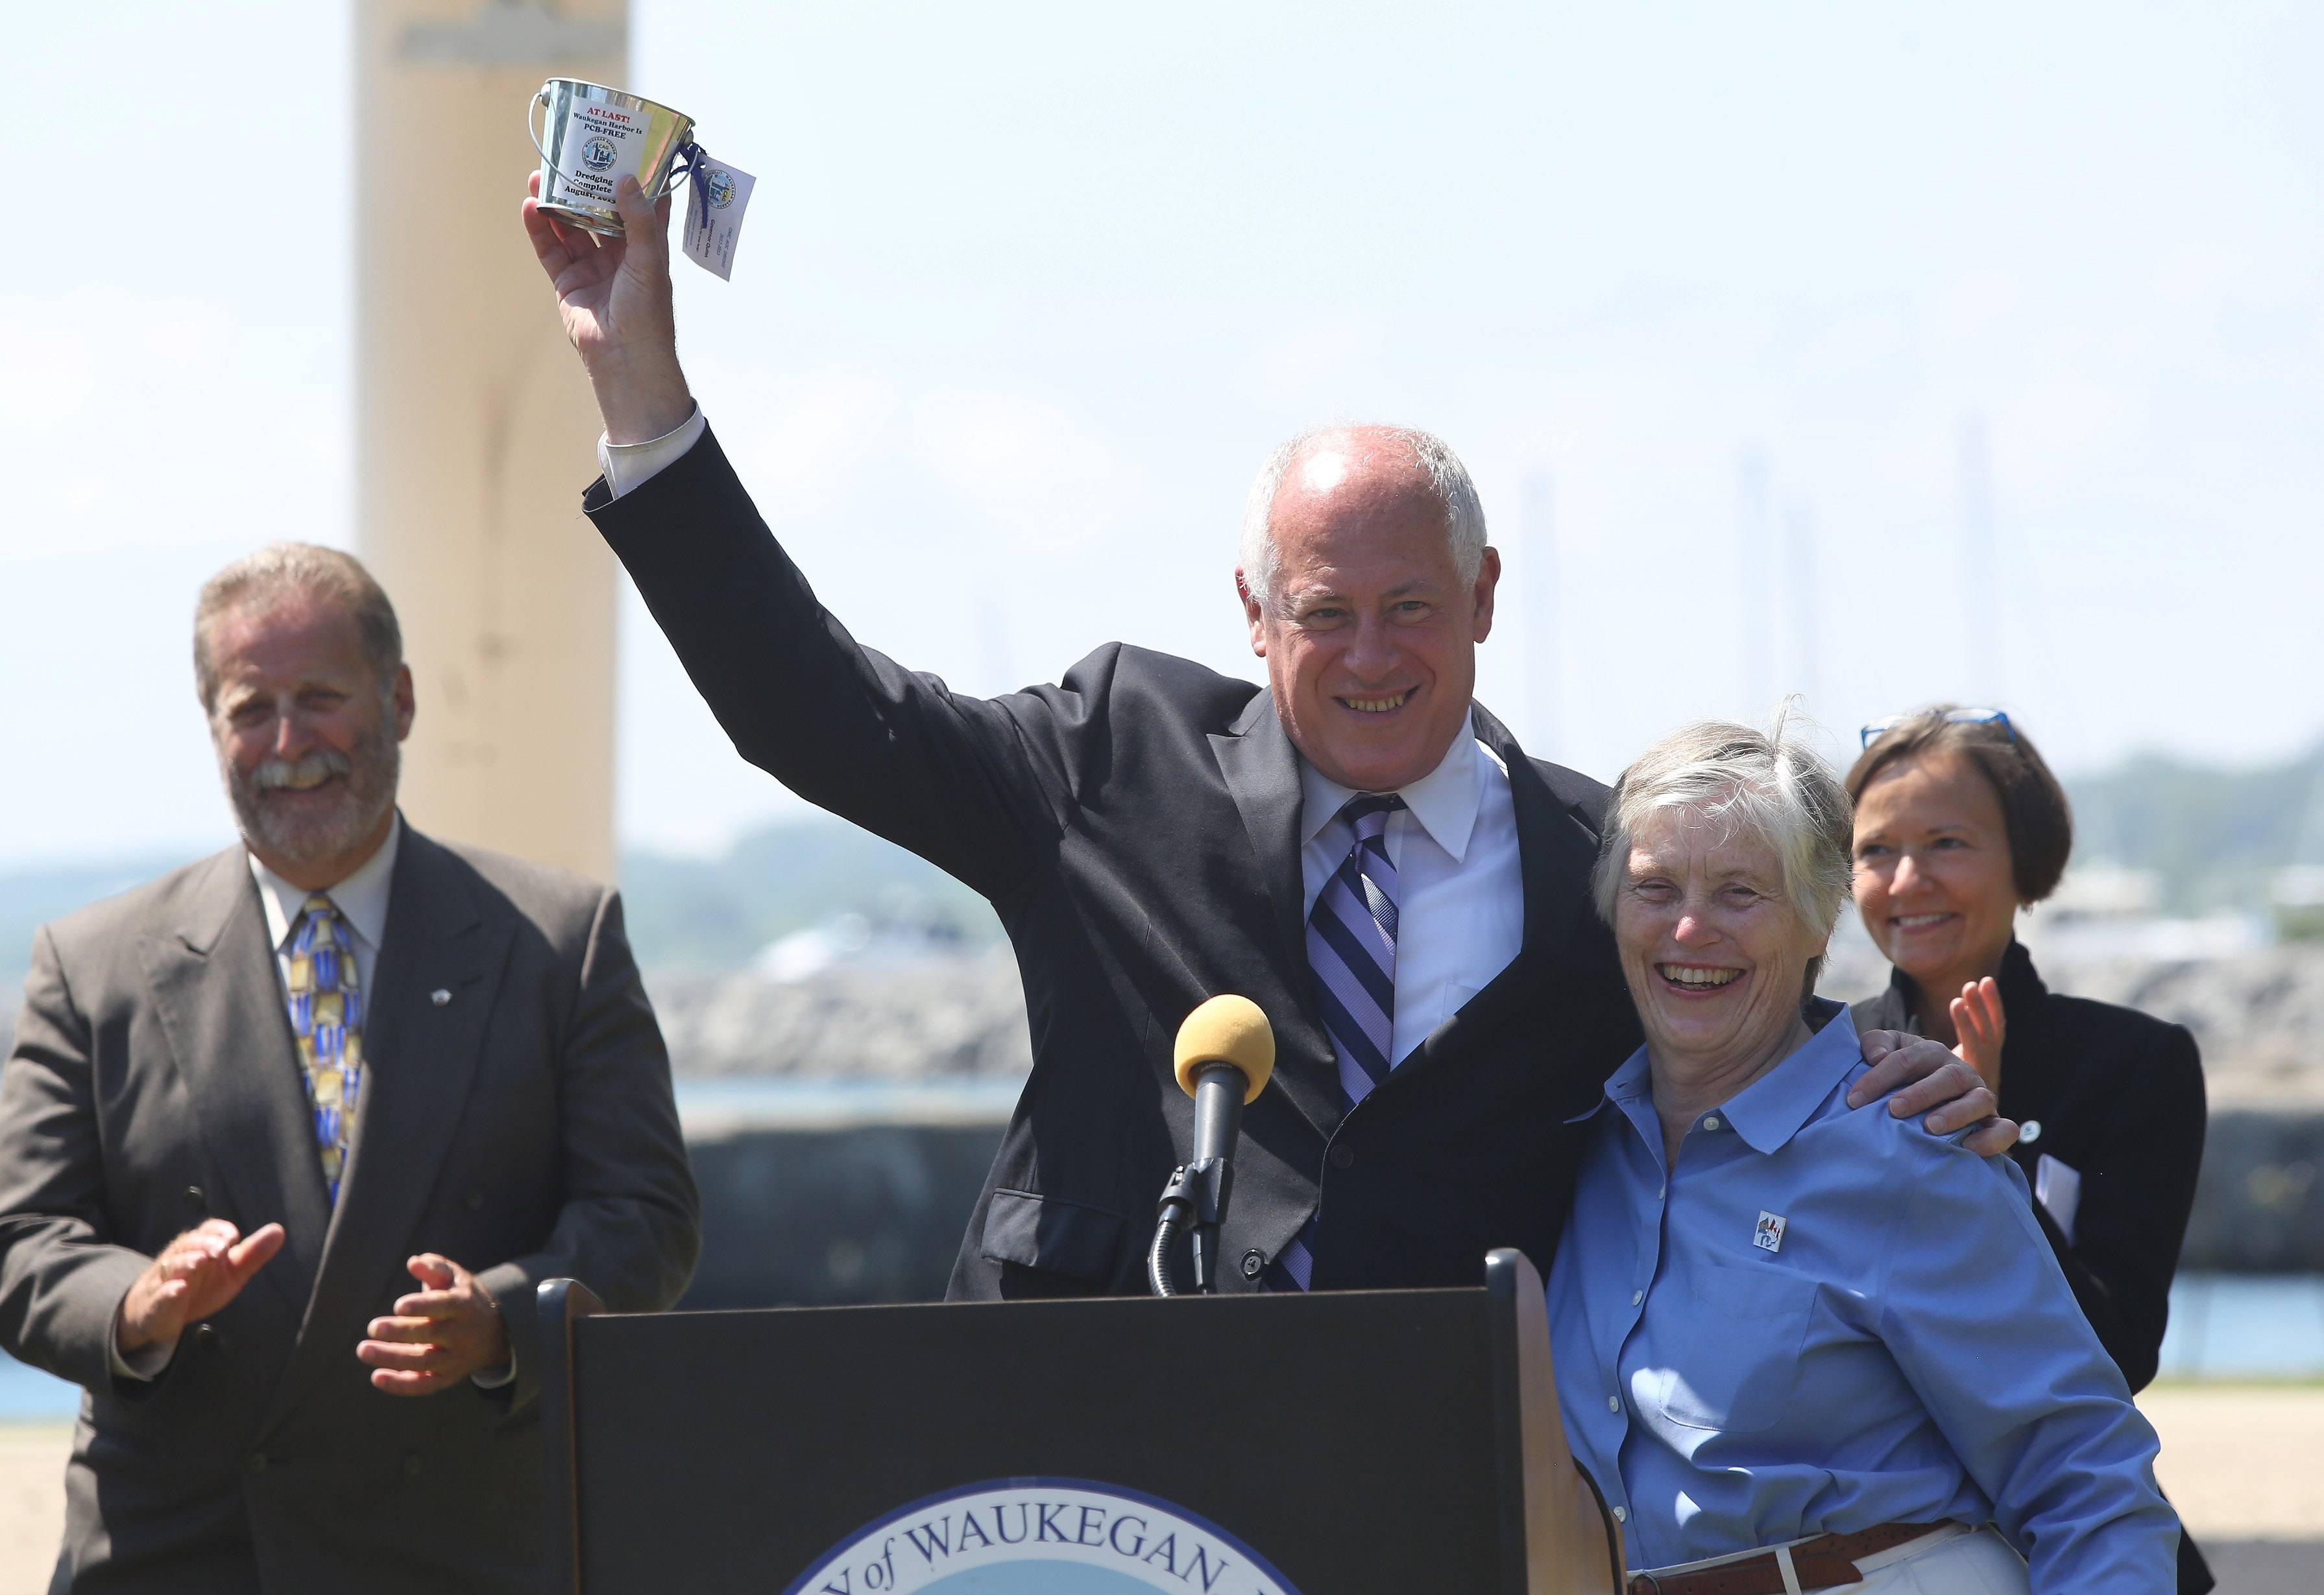 Gov. Pat Quinn holds up a bucket given to him by Susie Schreiber, chairwoman of the citizens advisory committee, during Tuesday's announcement of the completion of the Waukegan Harbor cleanup and its removal from the list of Great Lakes Areas of Concern. Speakers included U.S. Sen. Mark Kirk and Dick Durbin, U.S. Rep. Brad Schneider and Waukegan Mayor Wayne Motley.